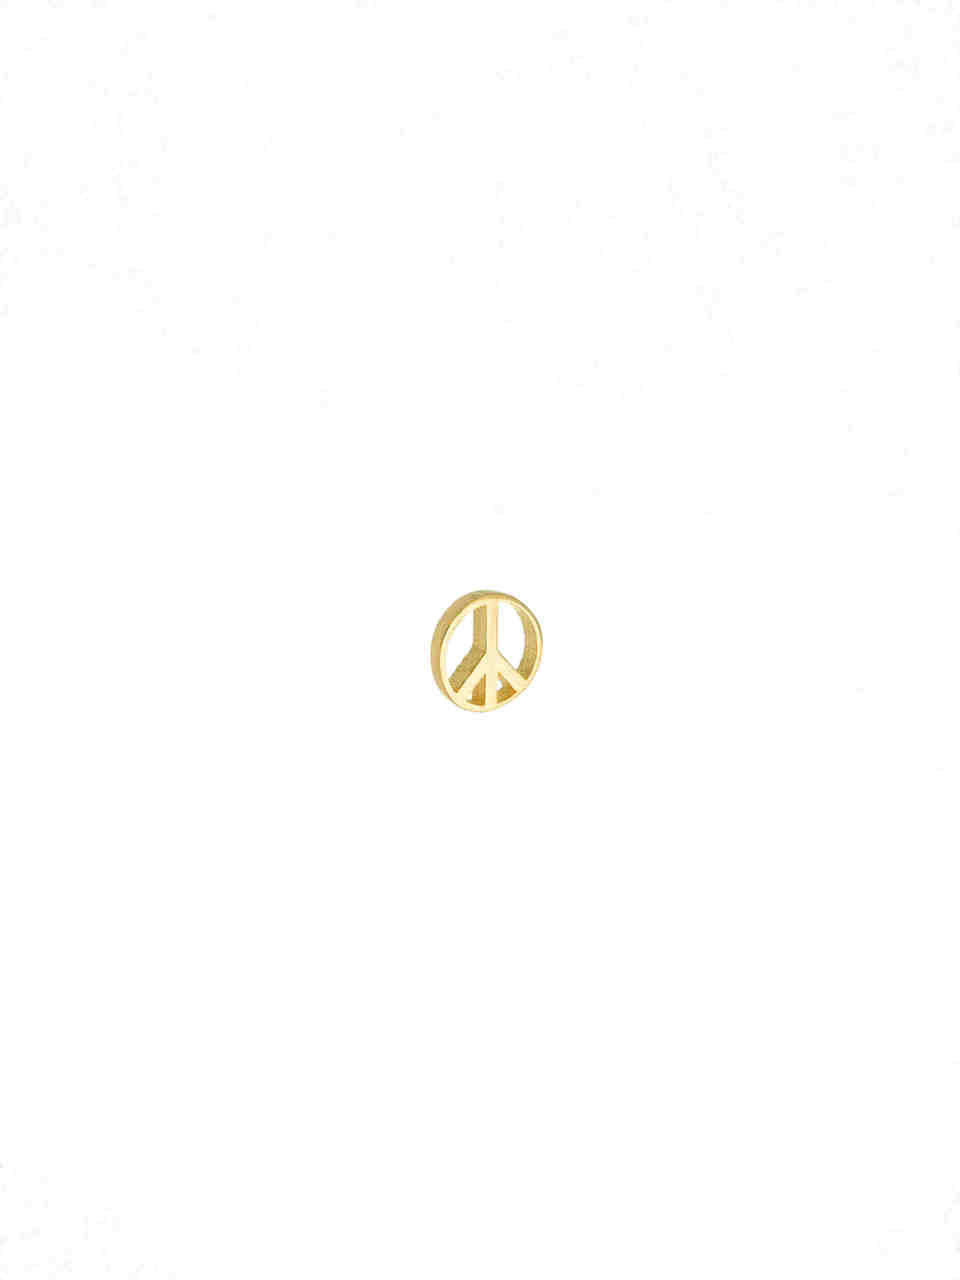 14k Gold Peace Sign for Locket